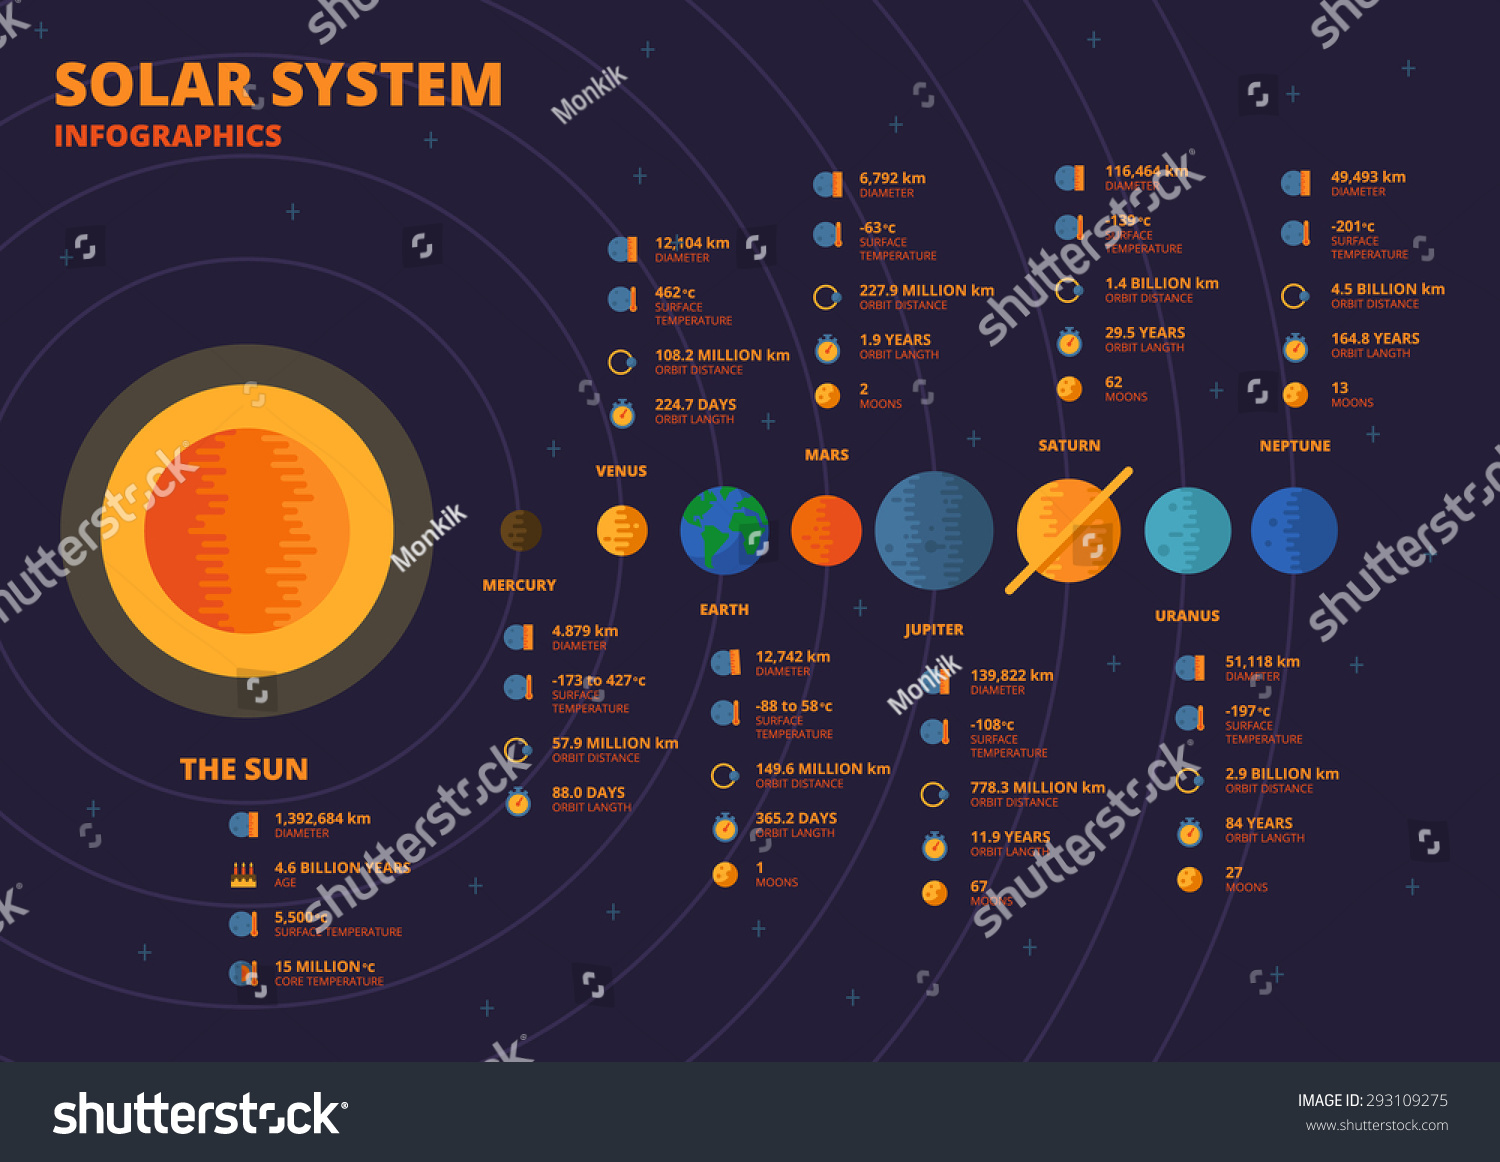 Delighted Diagram Math Small Les Paul 3 Pickup Wiring Diagram Regular Dual Humbuckers How To Install Remote Start Alarm Young Tele 3 Way Switch FreshSolar Panel Wiring Guide Solar System Infographics Stock Vector 293109275   Shutterstock